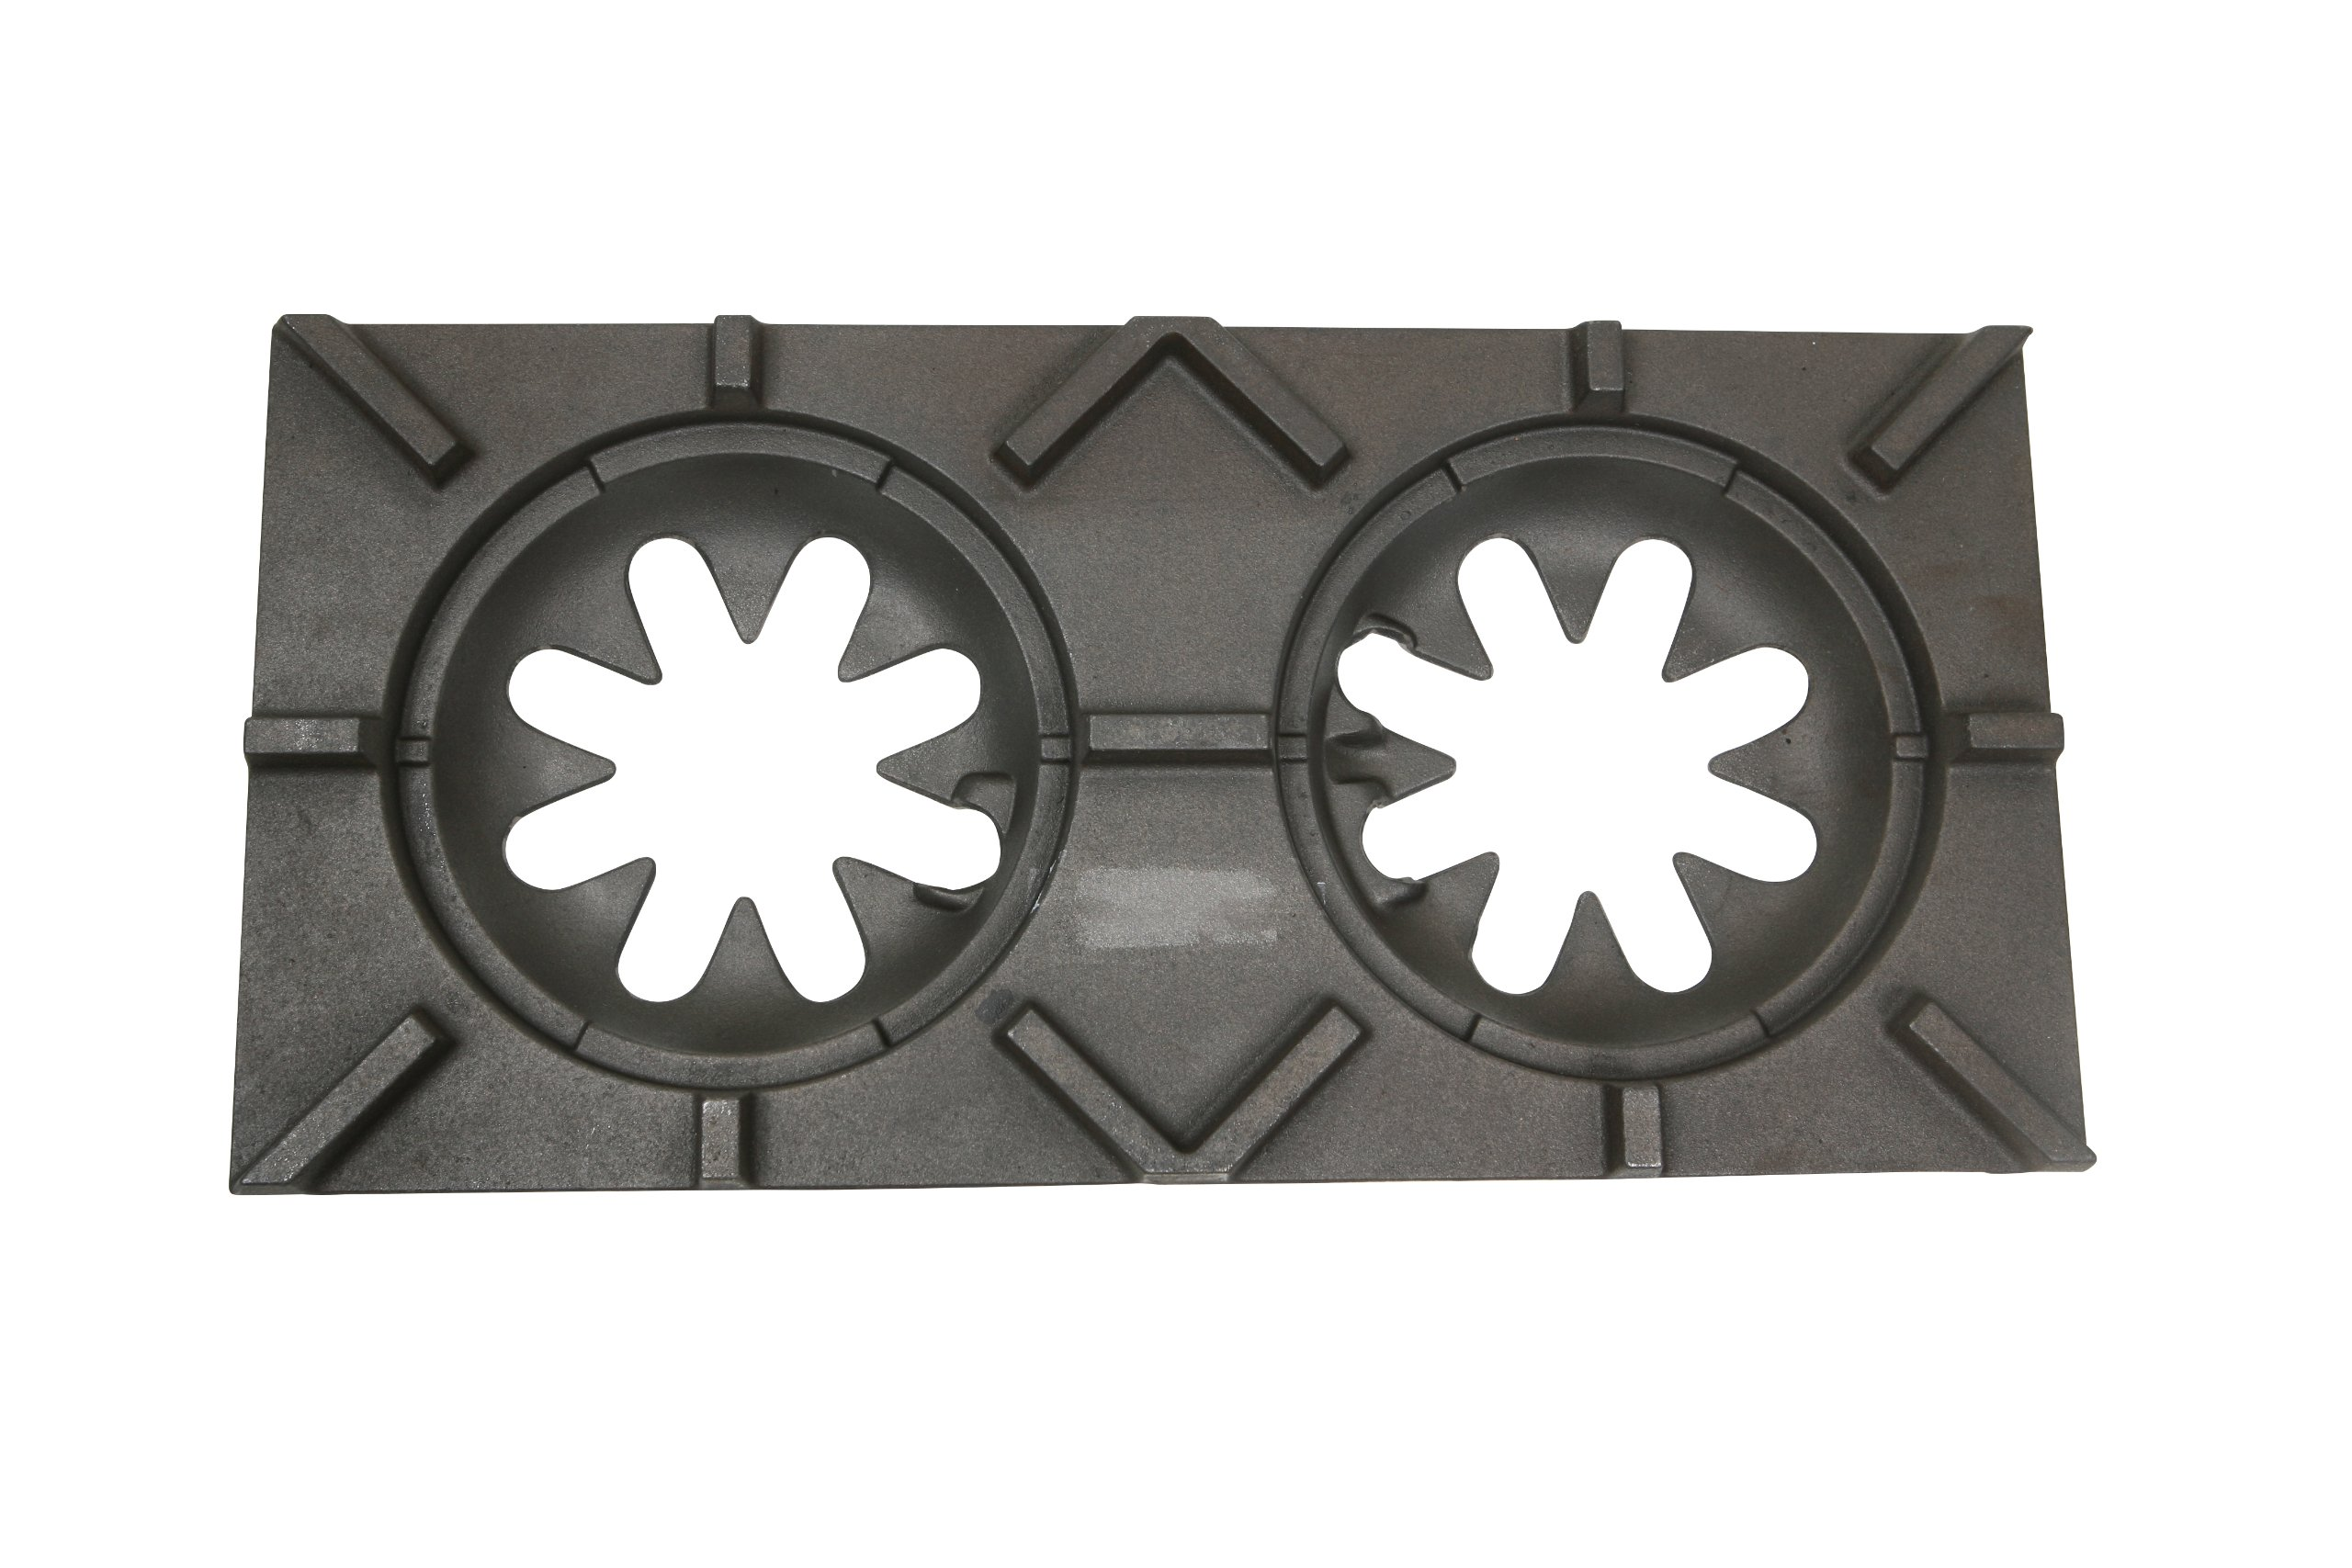 Garland 1726301 Cast Iron Top Grate by Garland